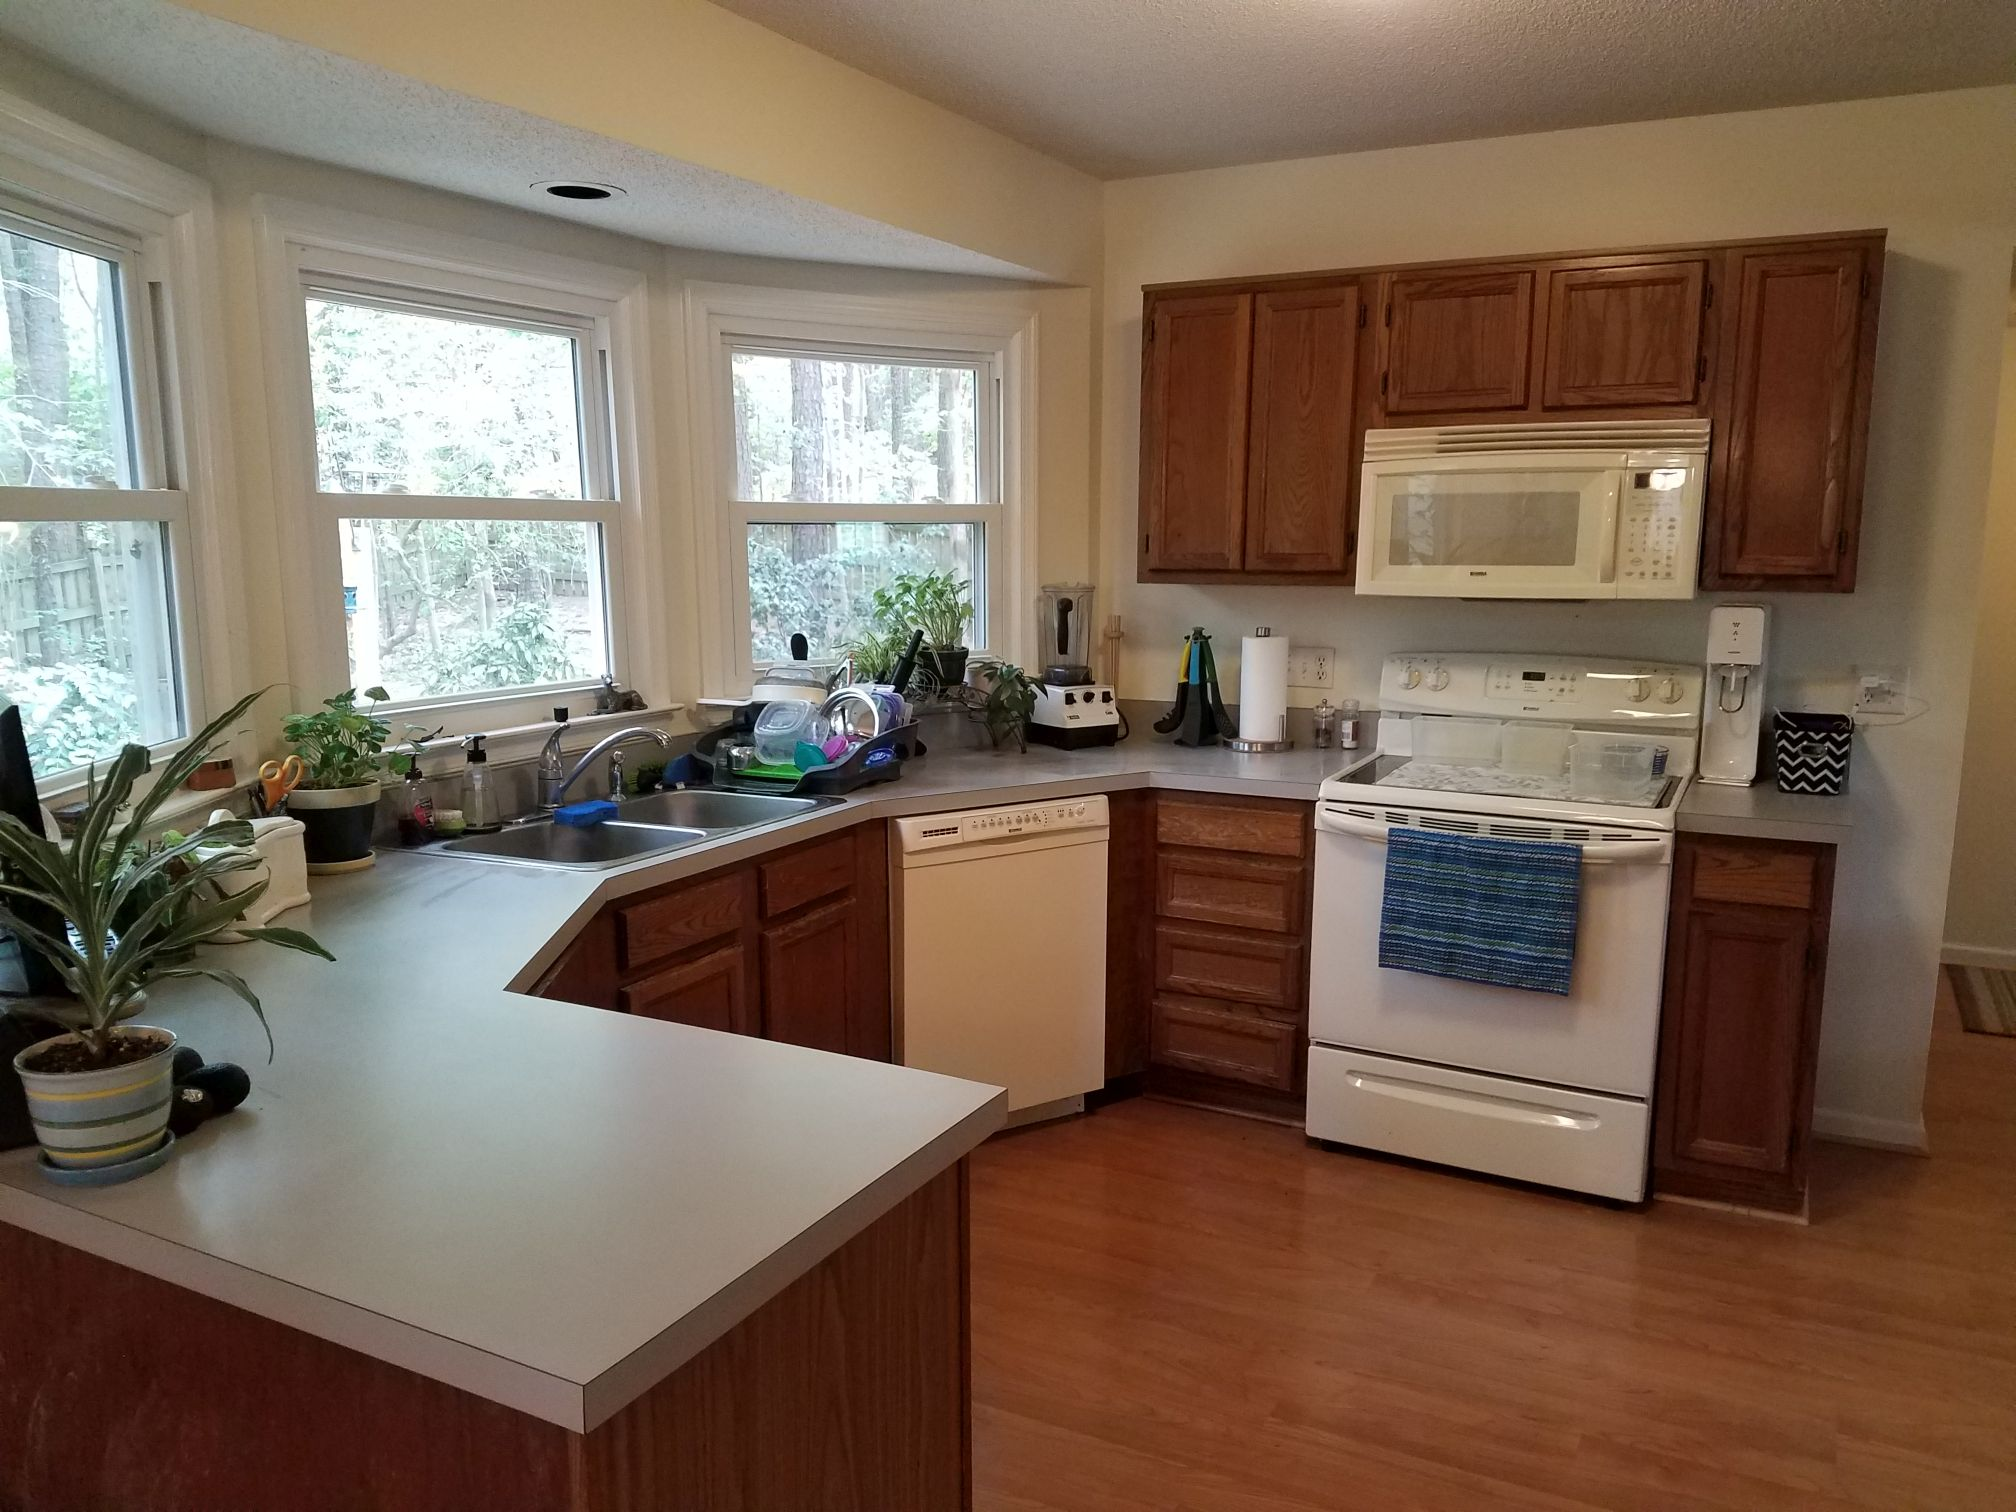 Cabinet Makers Durham Nc Kitchen Cabinet Prices Local Wood Floors Countertops